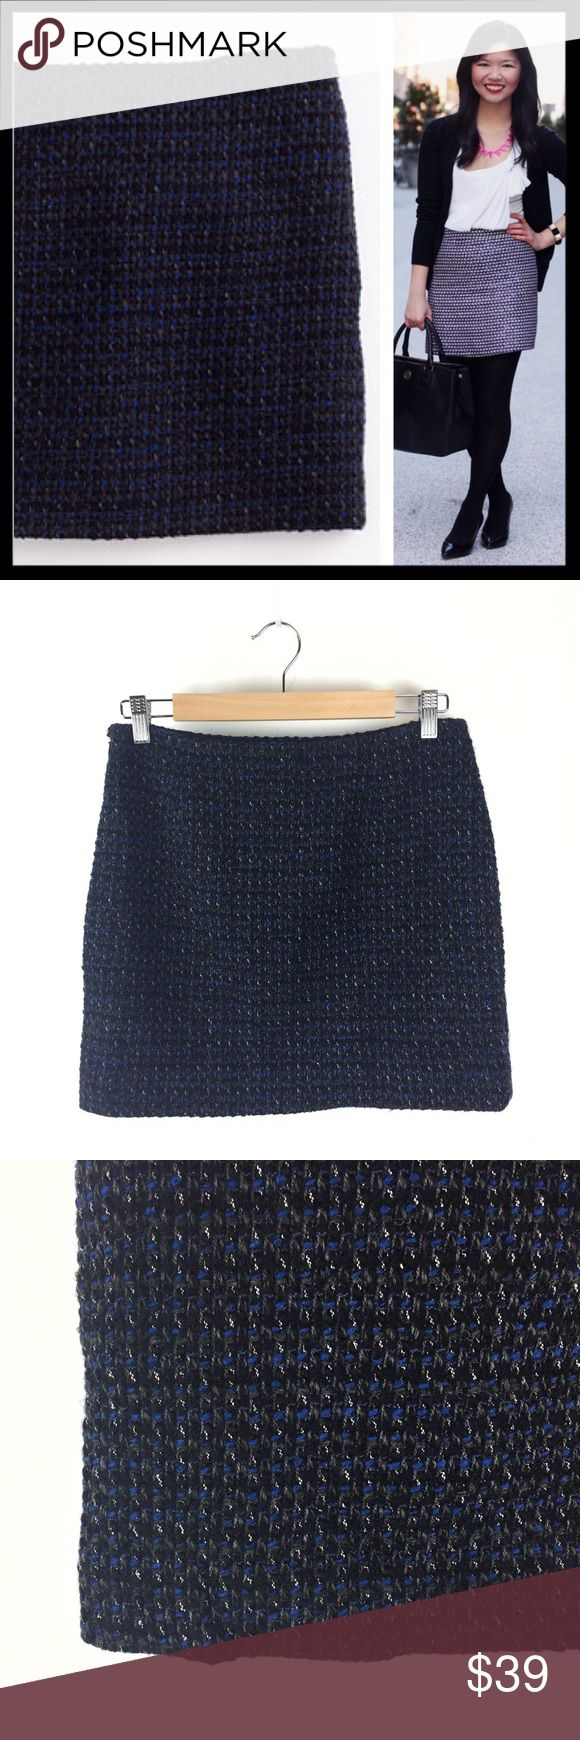 """j. crew // sapphire tweed mini skirt Such a cute skirt for fall and winter! Beautiful sapphire blue strands woven with gray and black. Sits lower on waist. Side zip. Fully lined 16"""" long. Wool/acrylic. Made exclusively for J.Crew Factory. Gently worn and in great condition. J. Crew Skirts Mini"""